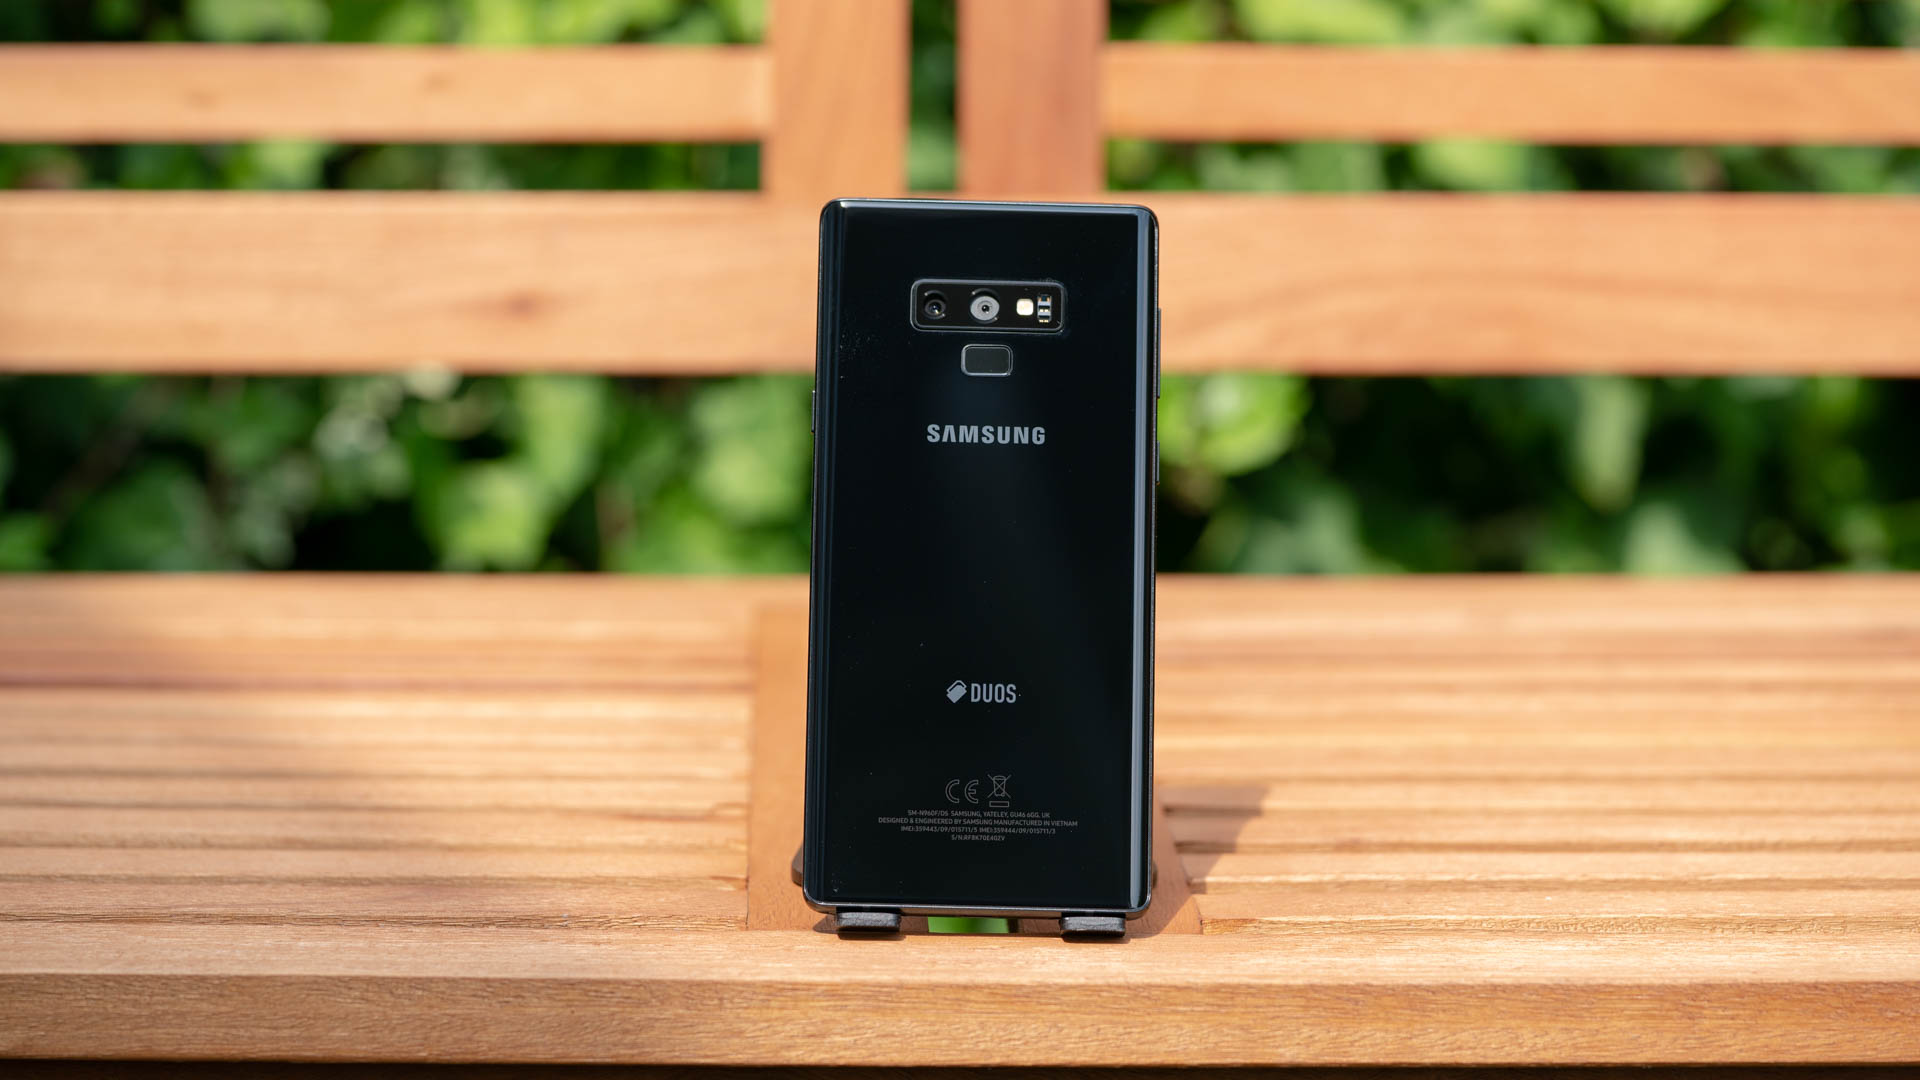 das samsung galaxy note 9 im test das beste und teuerste. Black Bedroom Furniture Sets. Home Design Ideas